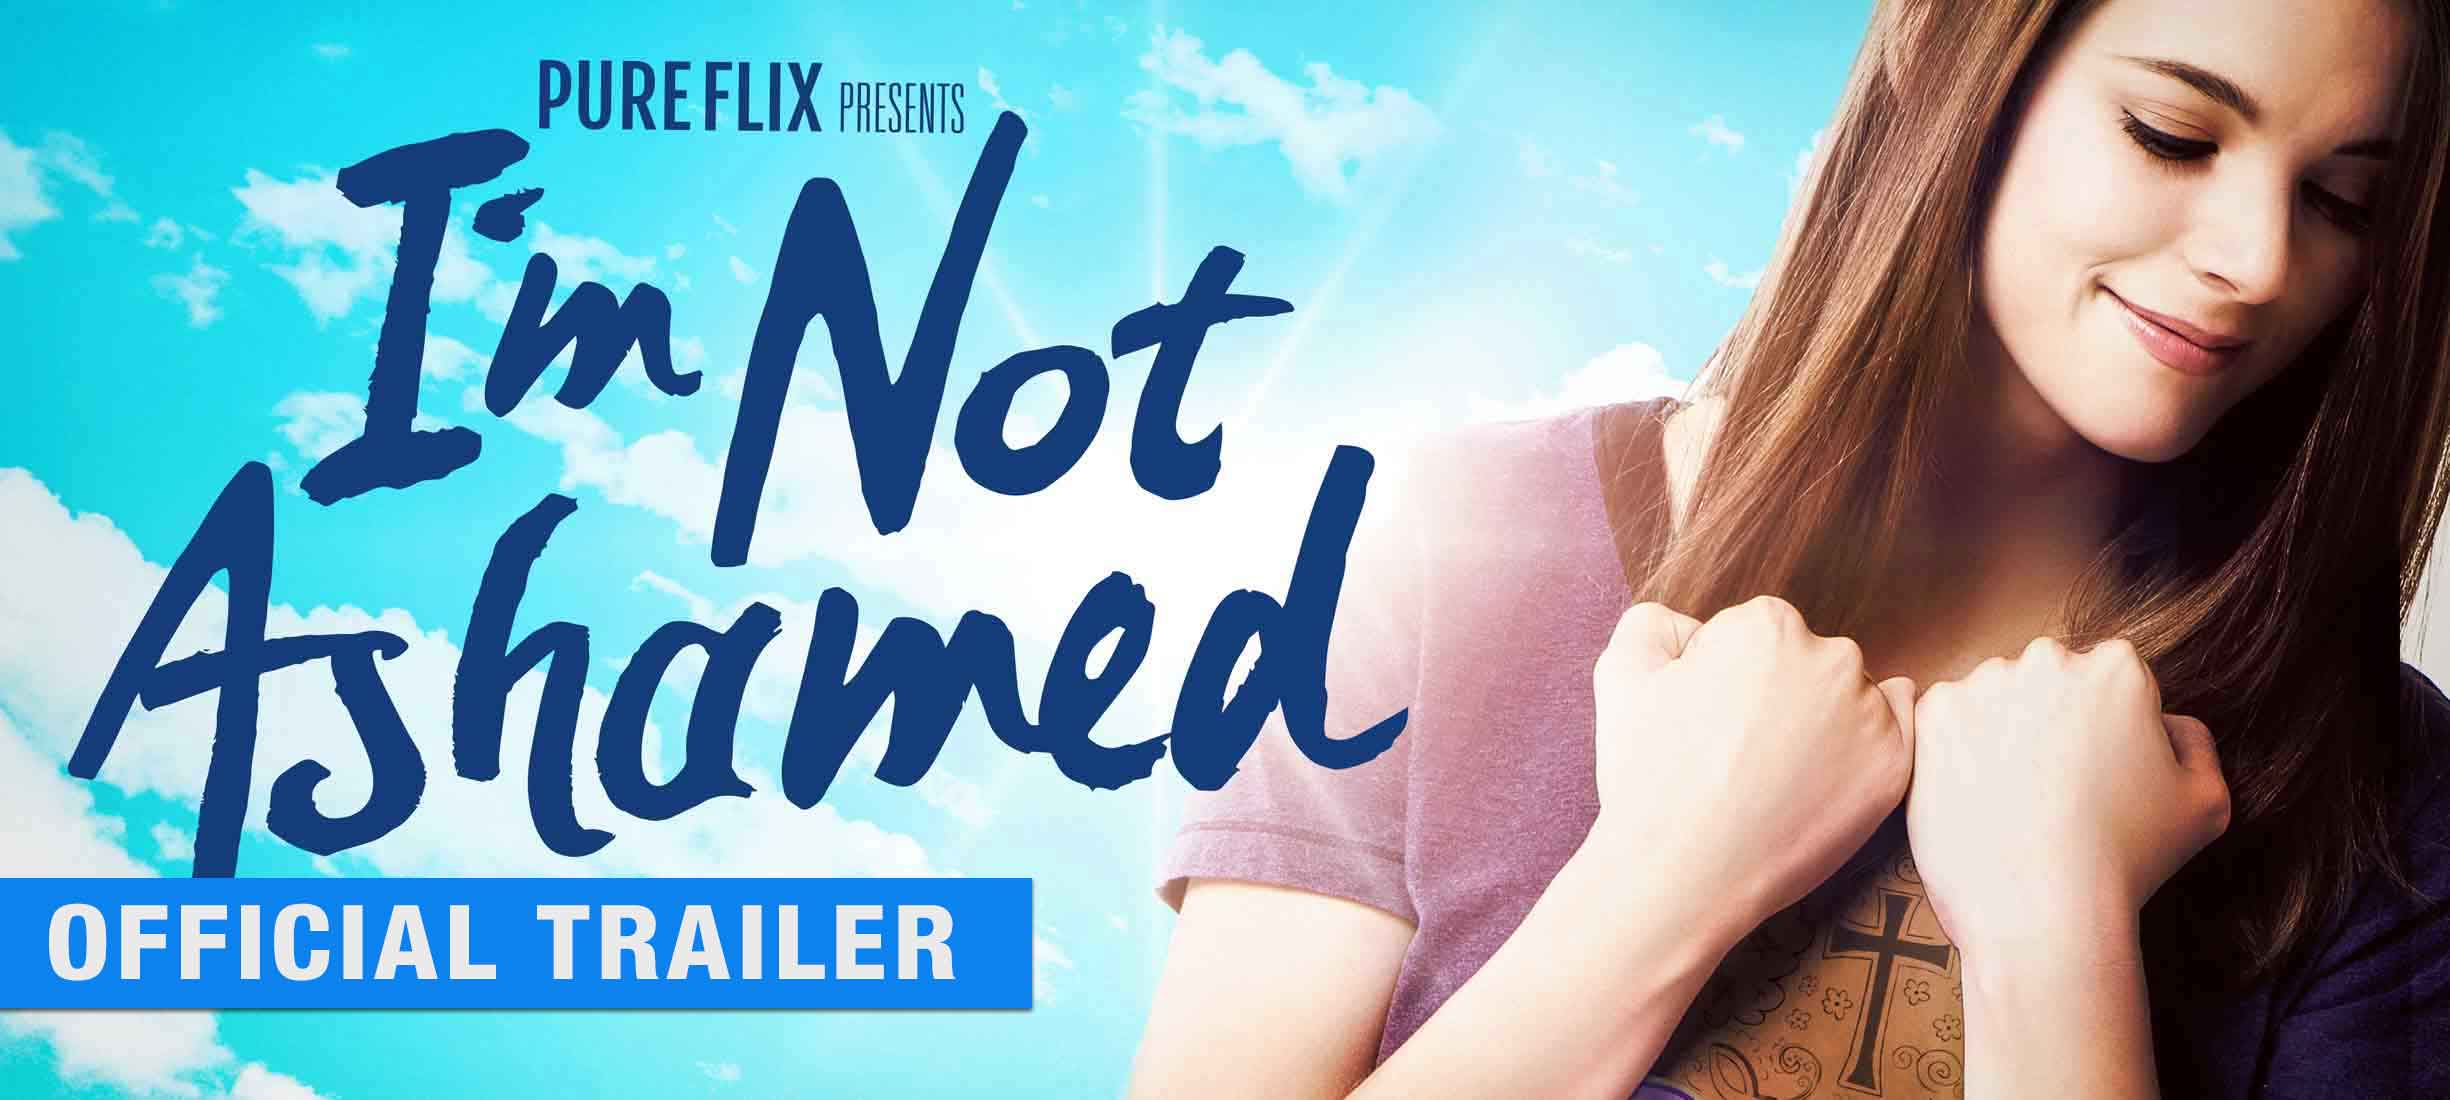 I'm Not Ashamed: Trailer